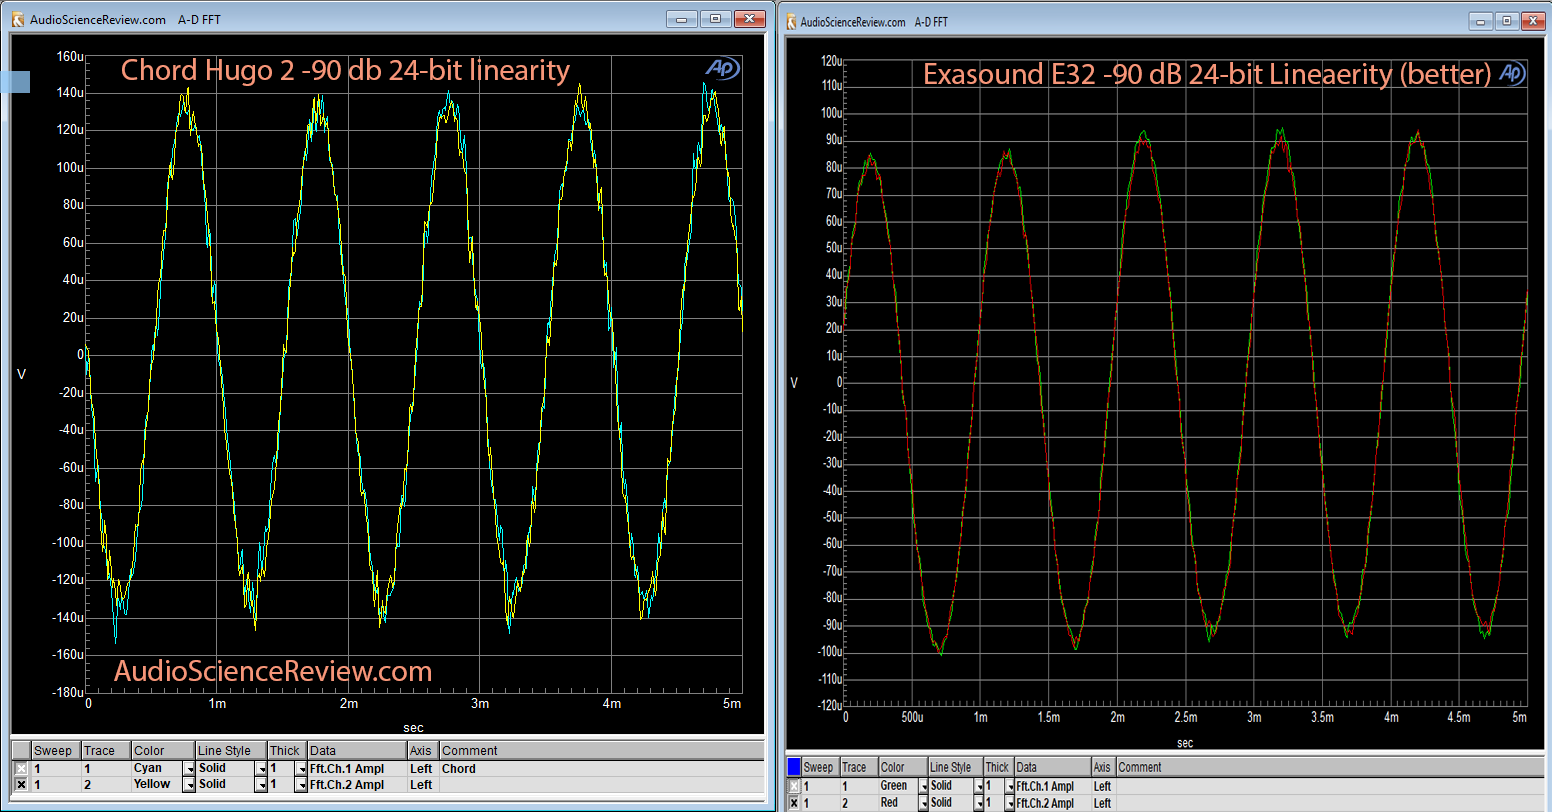 Chord Hugo 2 DAC -90 db Linearity Measurement.png